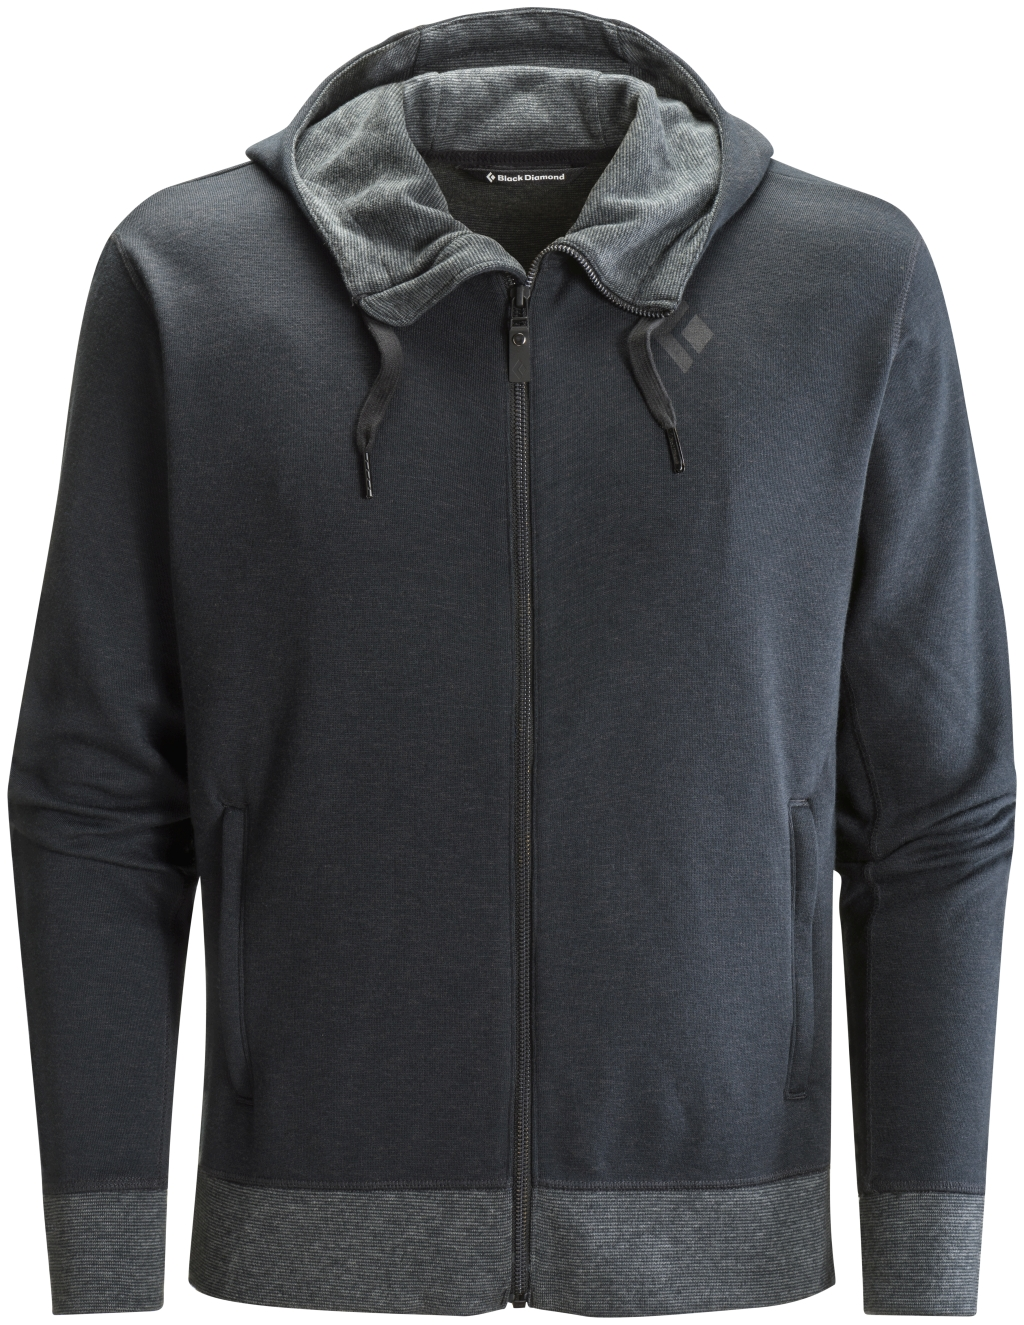 Black Diamond Boulder Hoody Black-30